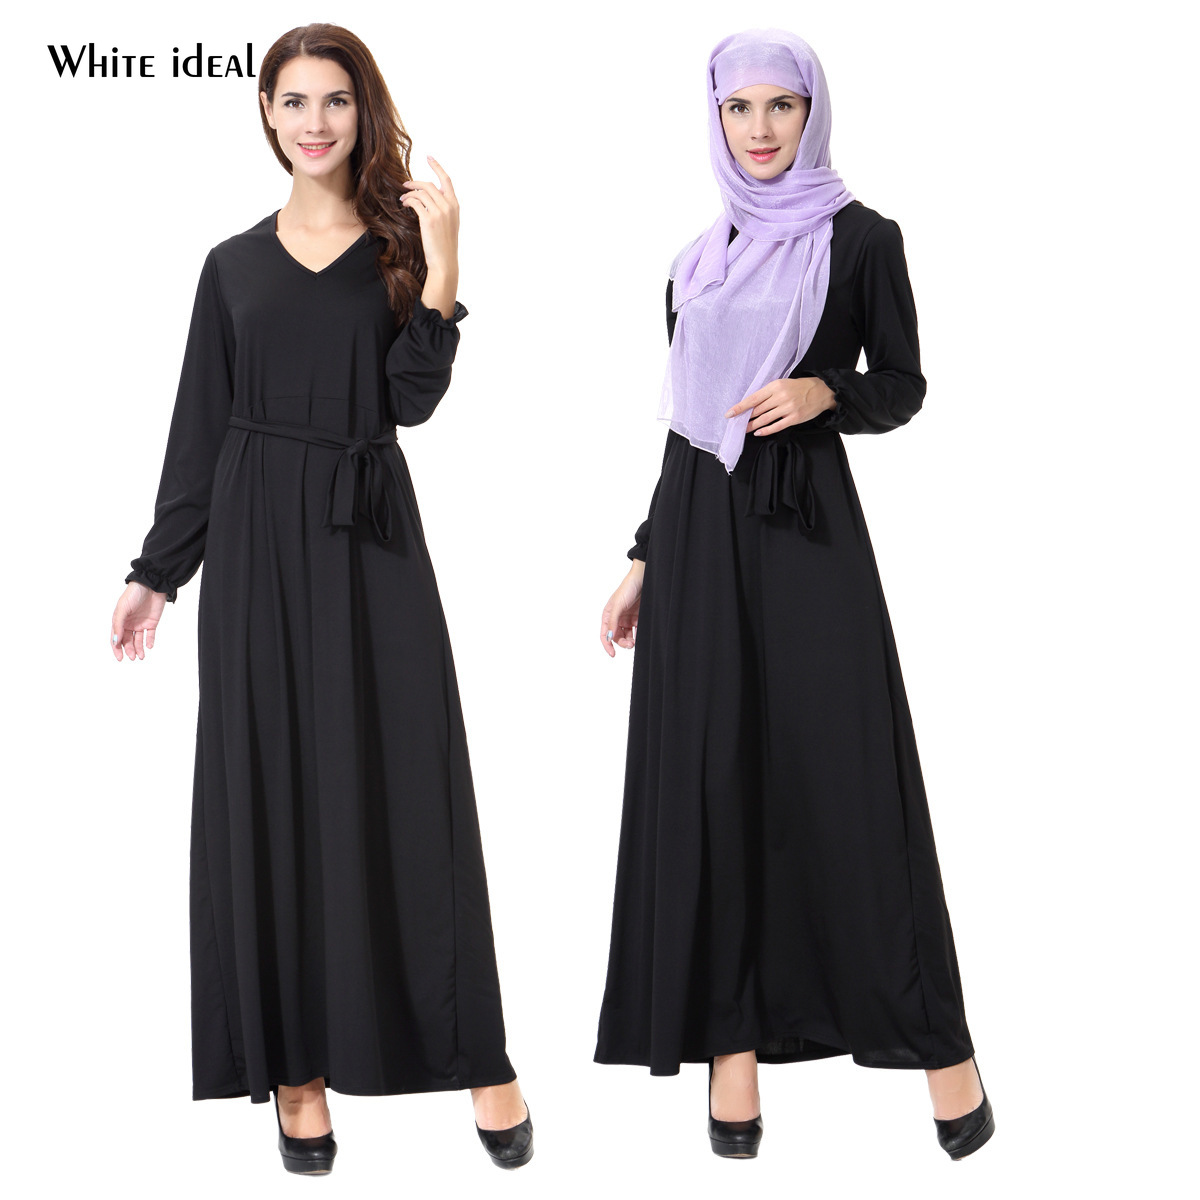 Muslim Black Dress Evening Gowns for Women Elegant Black Gown Long Sleeve Evening Dress Women Dress Evening Party